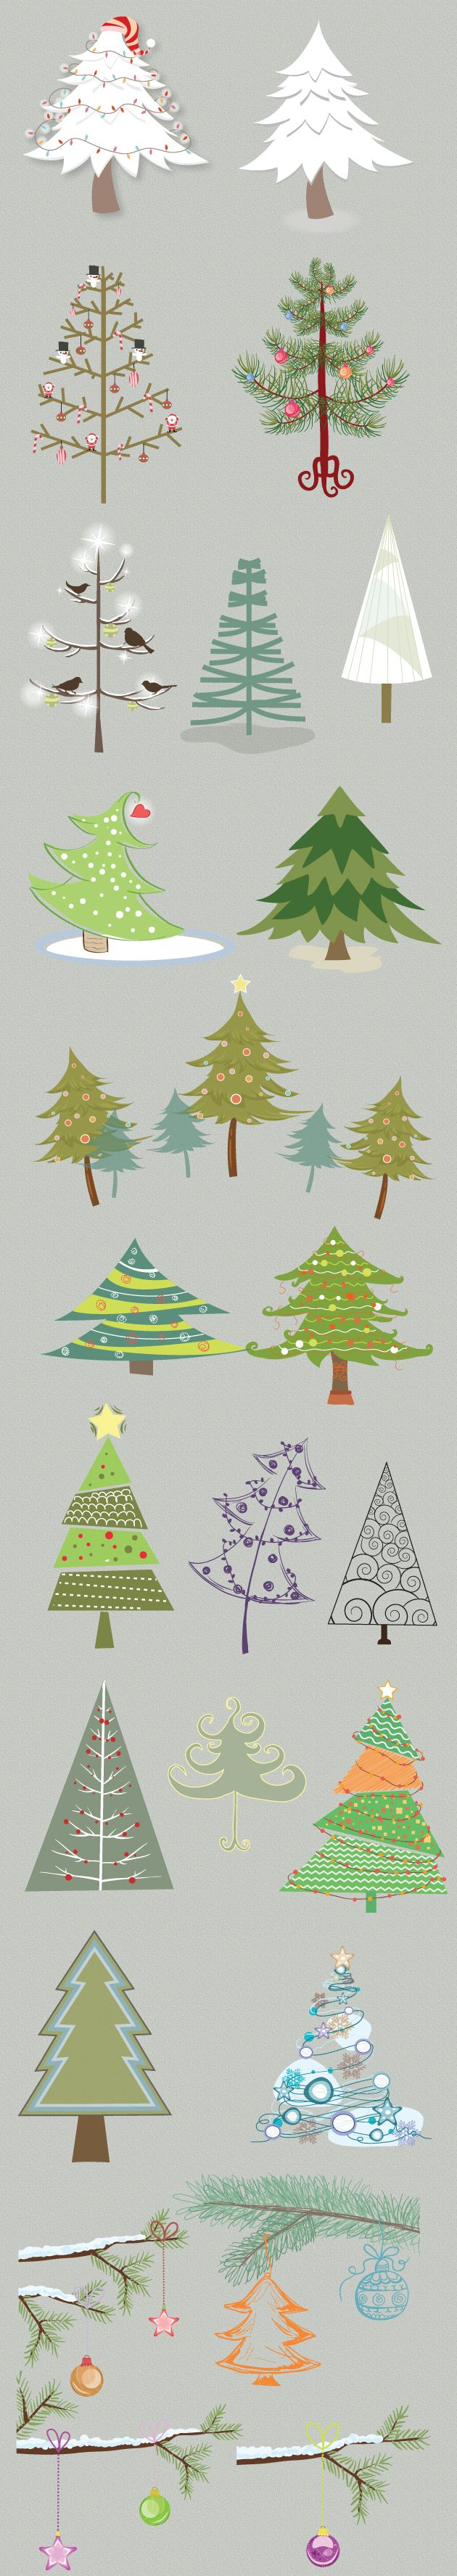 #vector-christmas-trees